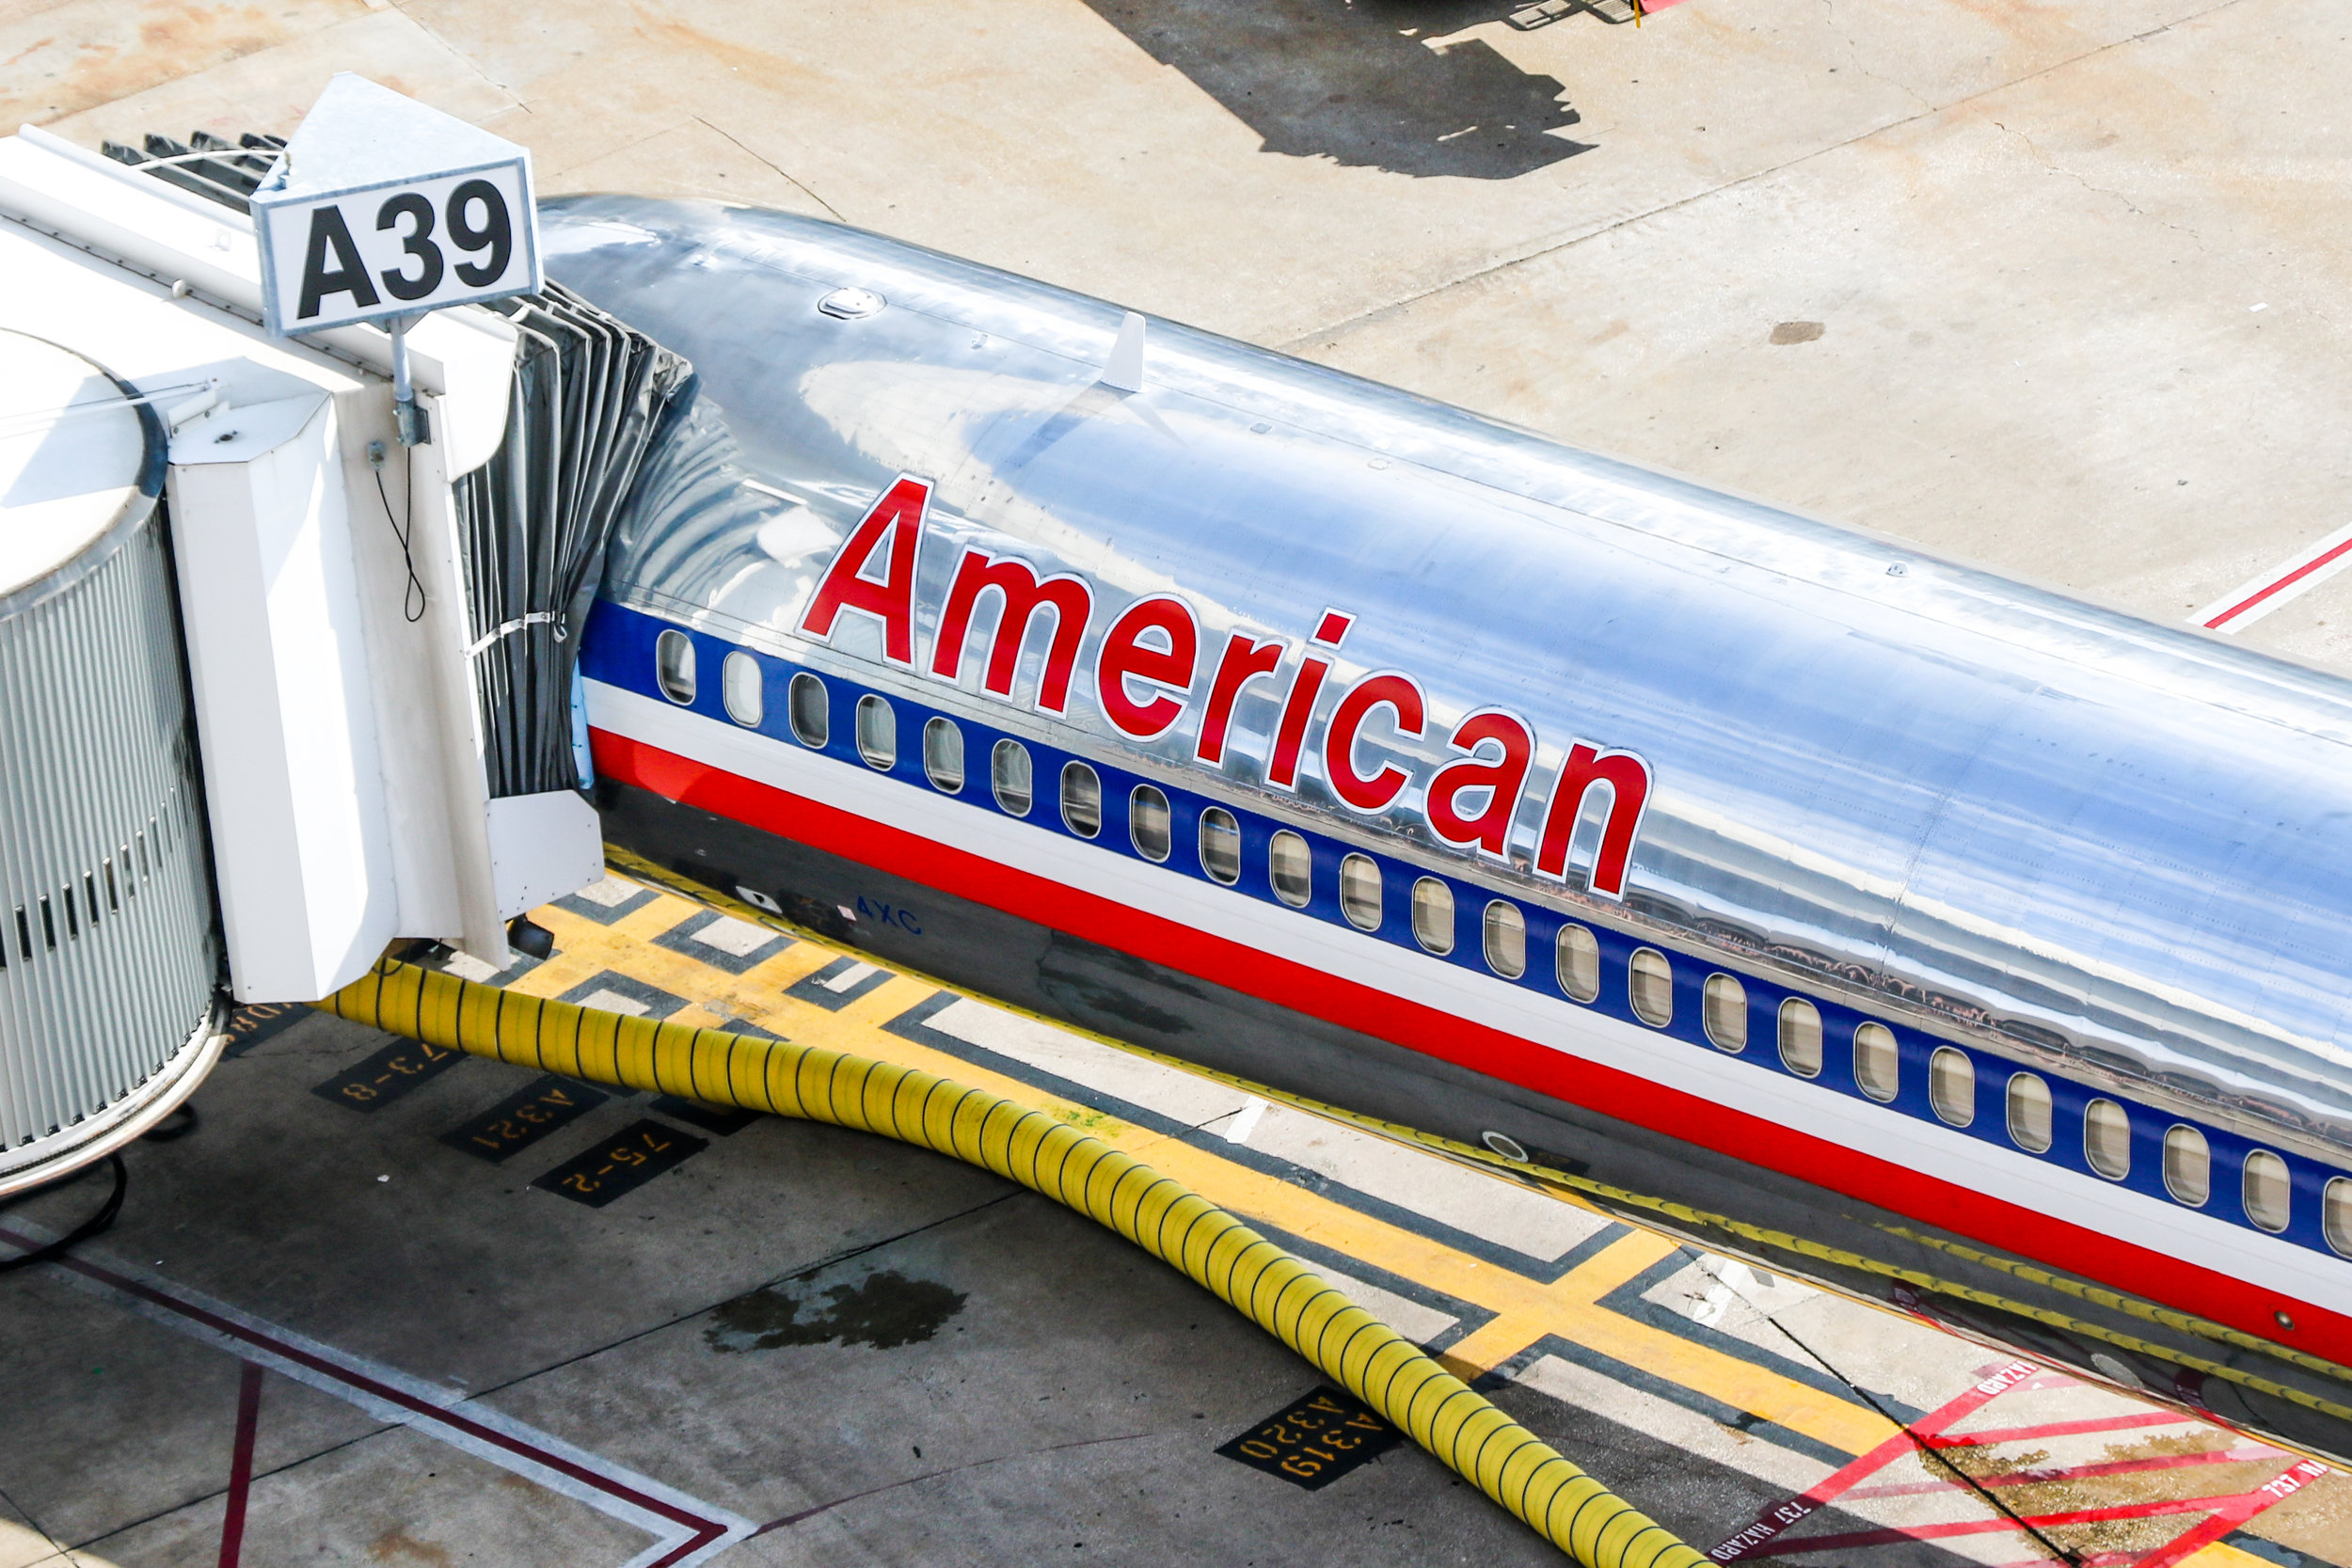 An American MD80 as seen from the company's ramp tower. MD80s are slowly being phased into retirement, being replaced by newer, more fuel efficient Airbus and Boeing aircraft like the 737 and A320 families.